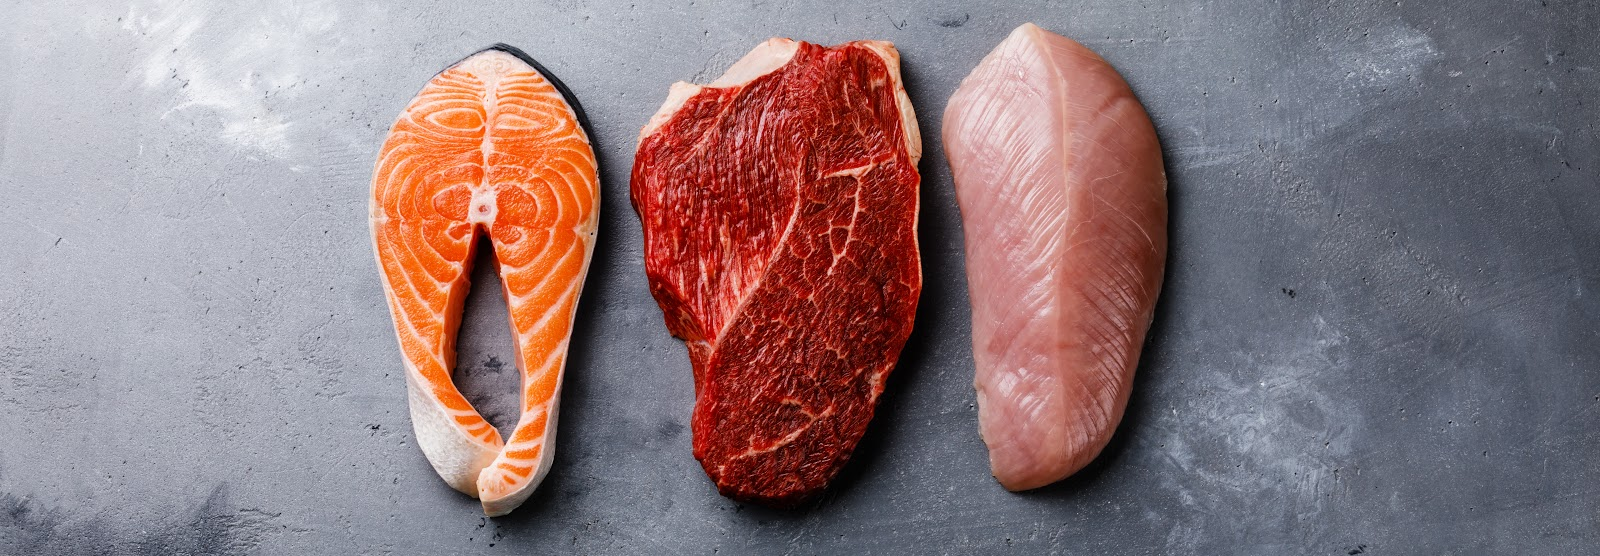 A salmon, steak and chicken cut on steel counter.